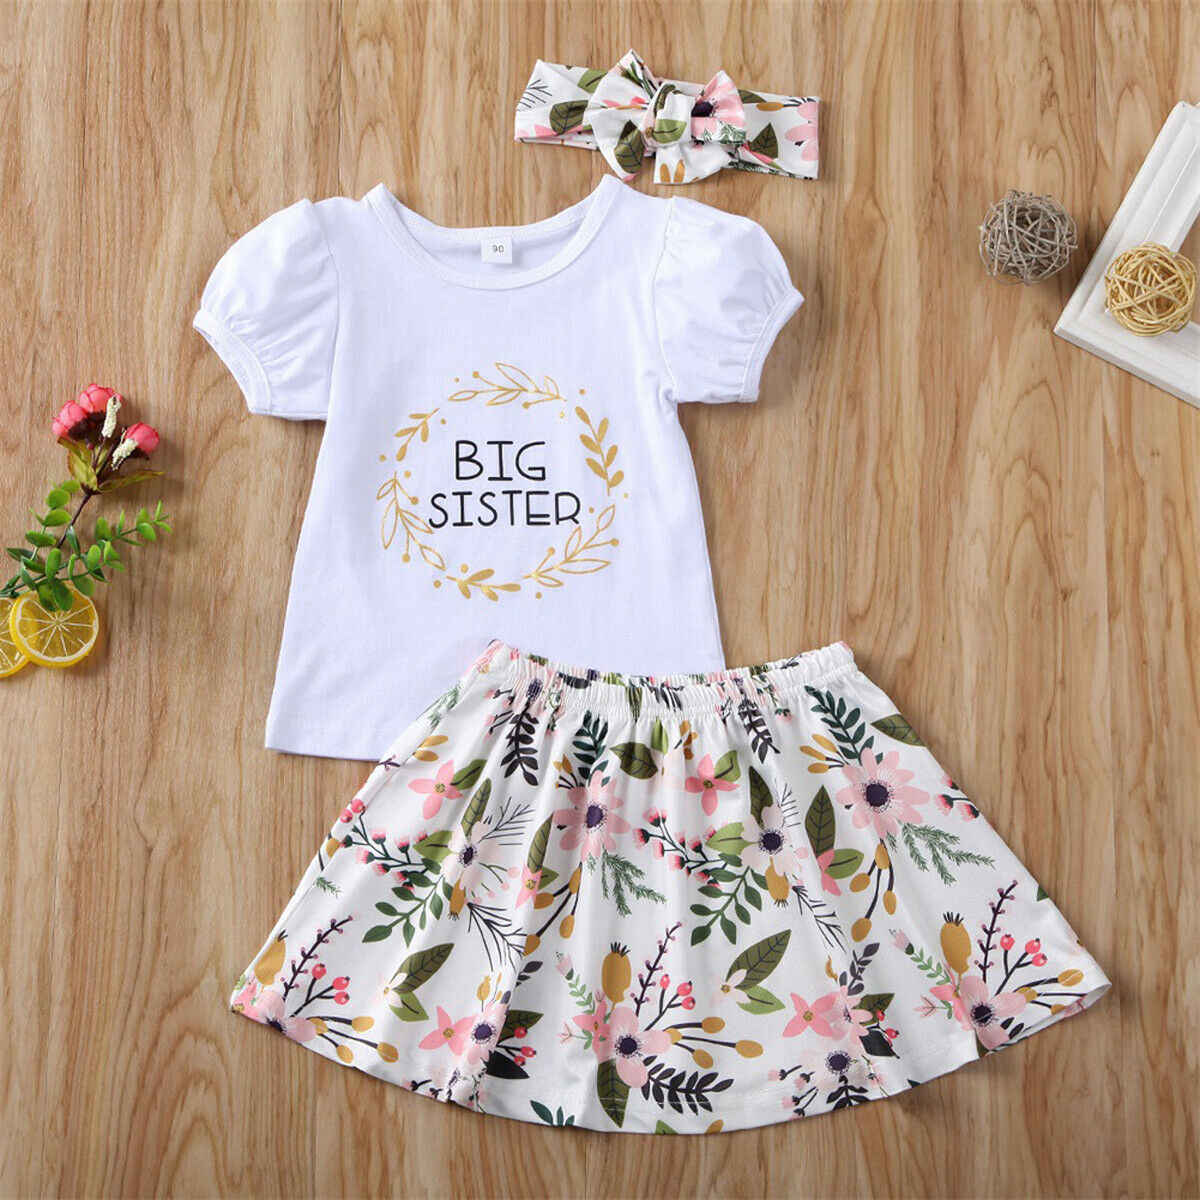 Floral Skirt Clothes Set Toddler Baby Girls Sister Matching Outfits Baby Little Sister Romper Big Sister Tops